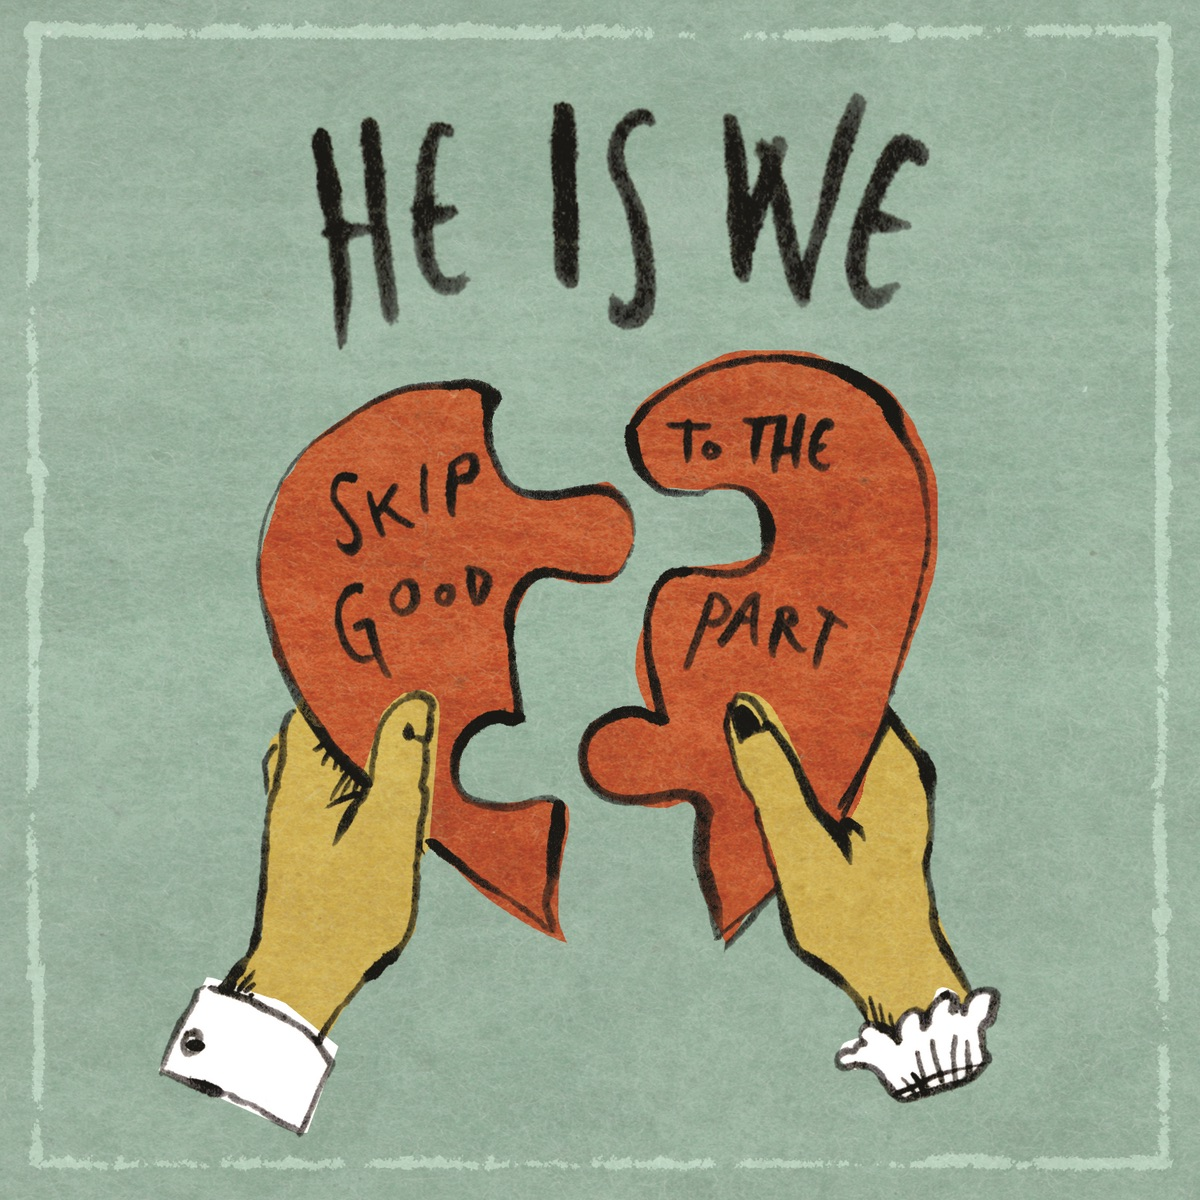 Skip to the Good Part - EP He Is We CD cover